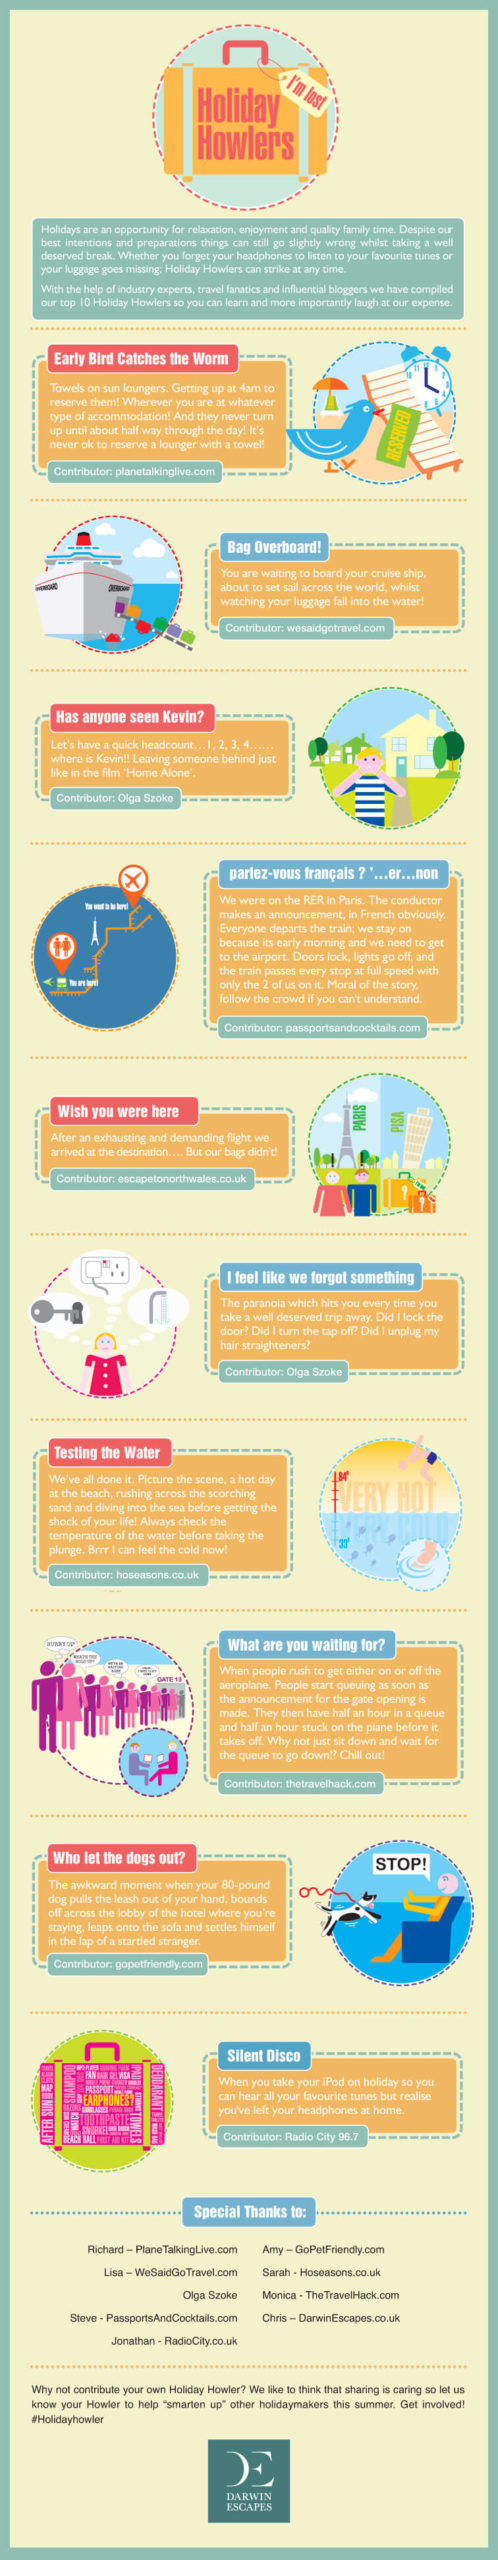 infographic of some of the most unfortunate things to happen on holiday